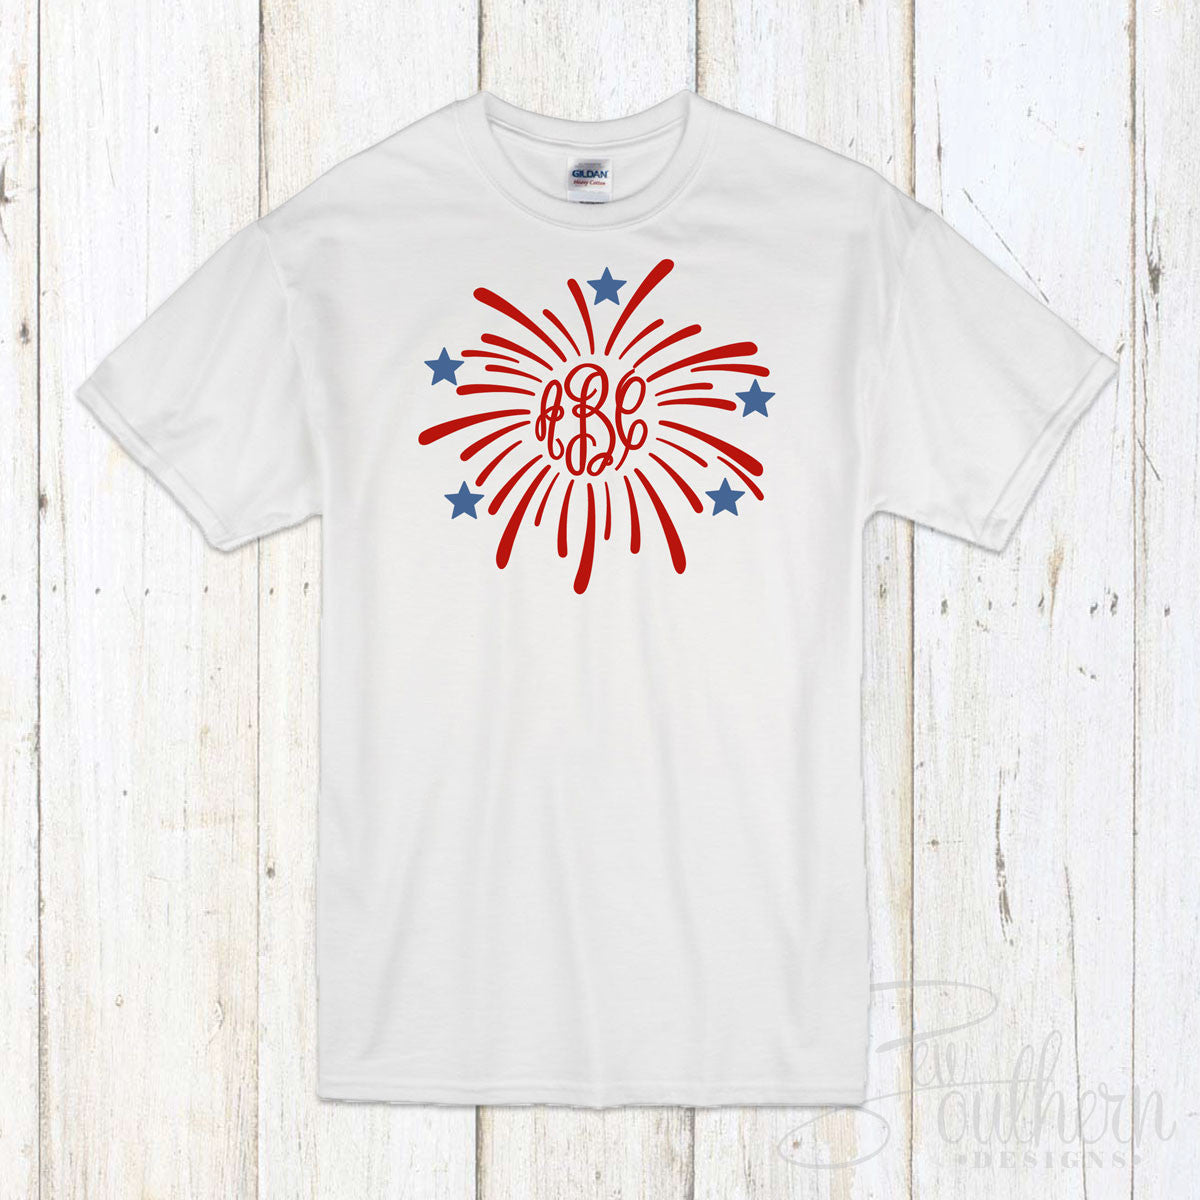 Fireworks Monogram T-Shirt - White